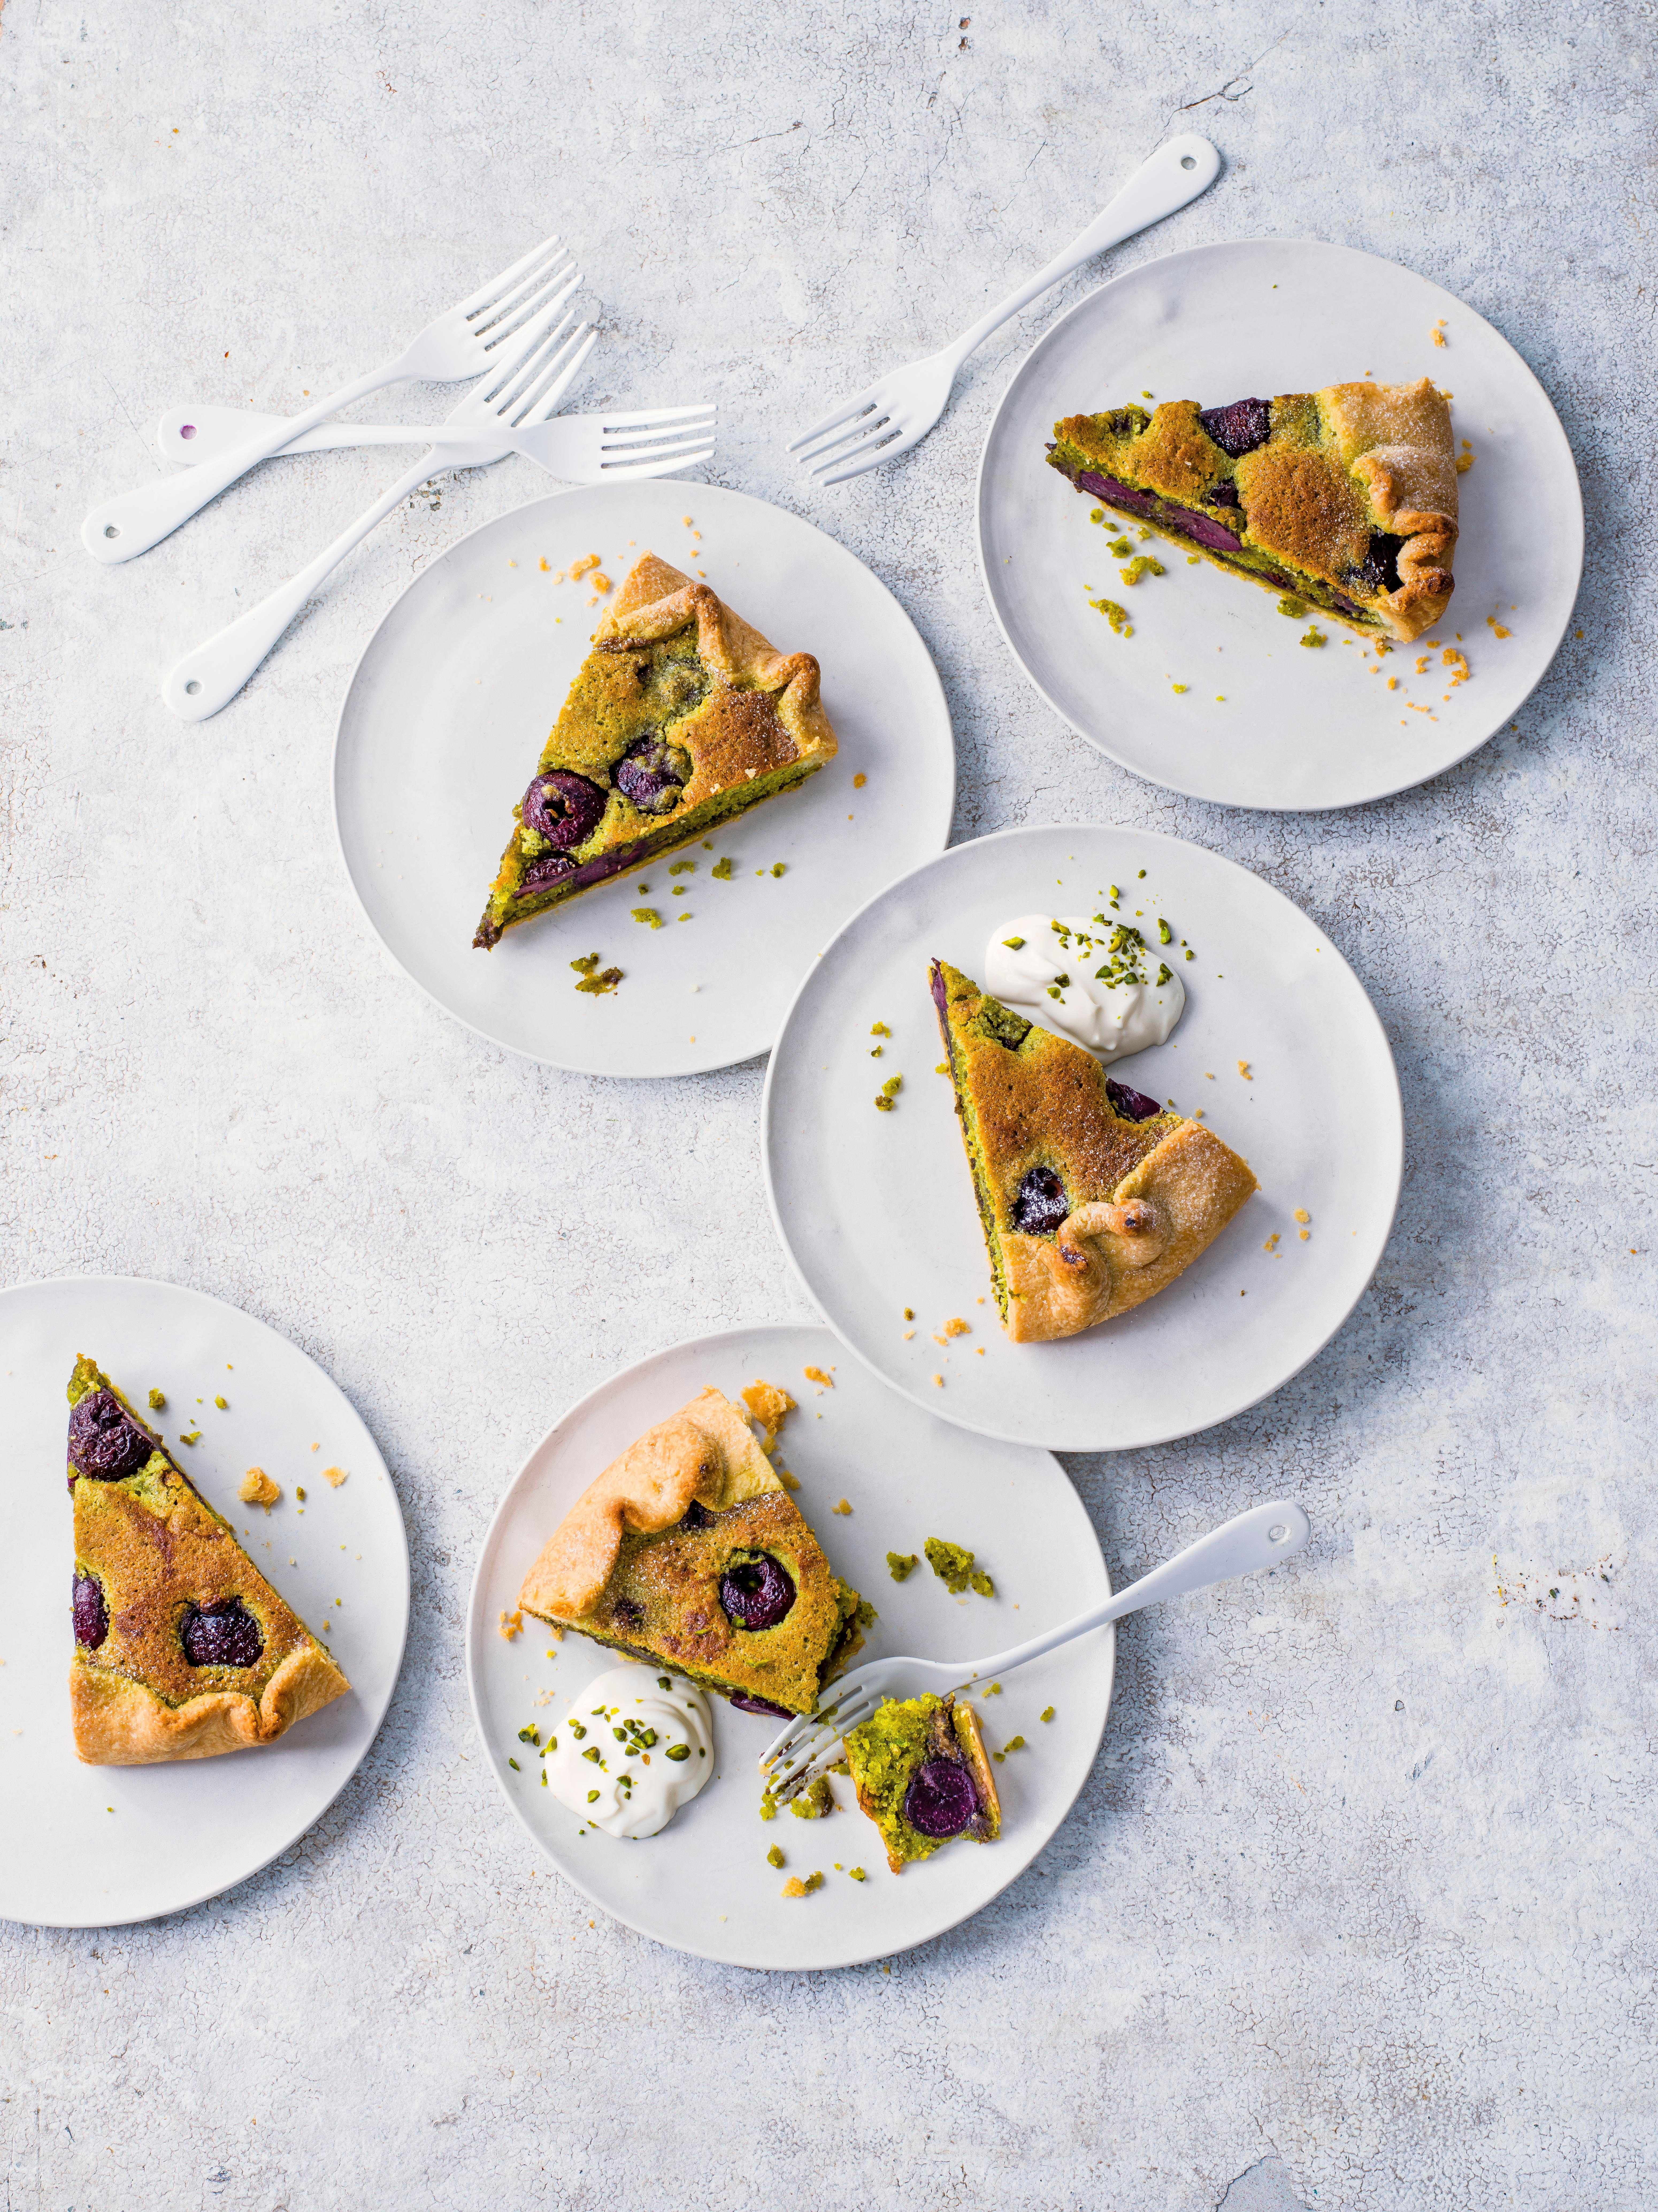 Bakewell Tart with Cherries and Pistachio galette cut up into triangles and served on round white plates on a rustic white table